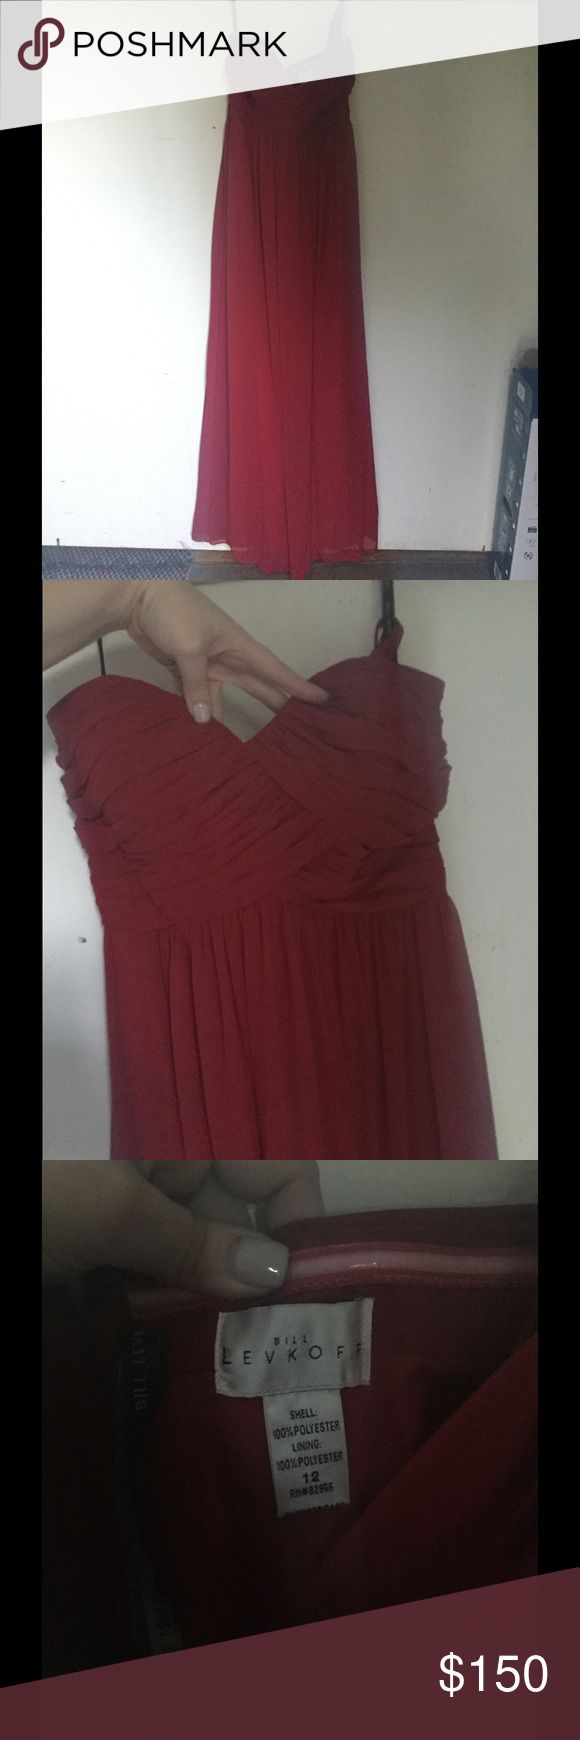 Beautiful red Bill Levkoff formal dress Bill Levkoff bridesmaid dress. Worn for like 4 hours. Size 12 xl length. Pretty rose red. There was no alterations done to it. Paid $300 for it kind of firm on price but open to offers. Willing to negotiate Bill Levkoff Dresses Strapless